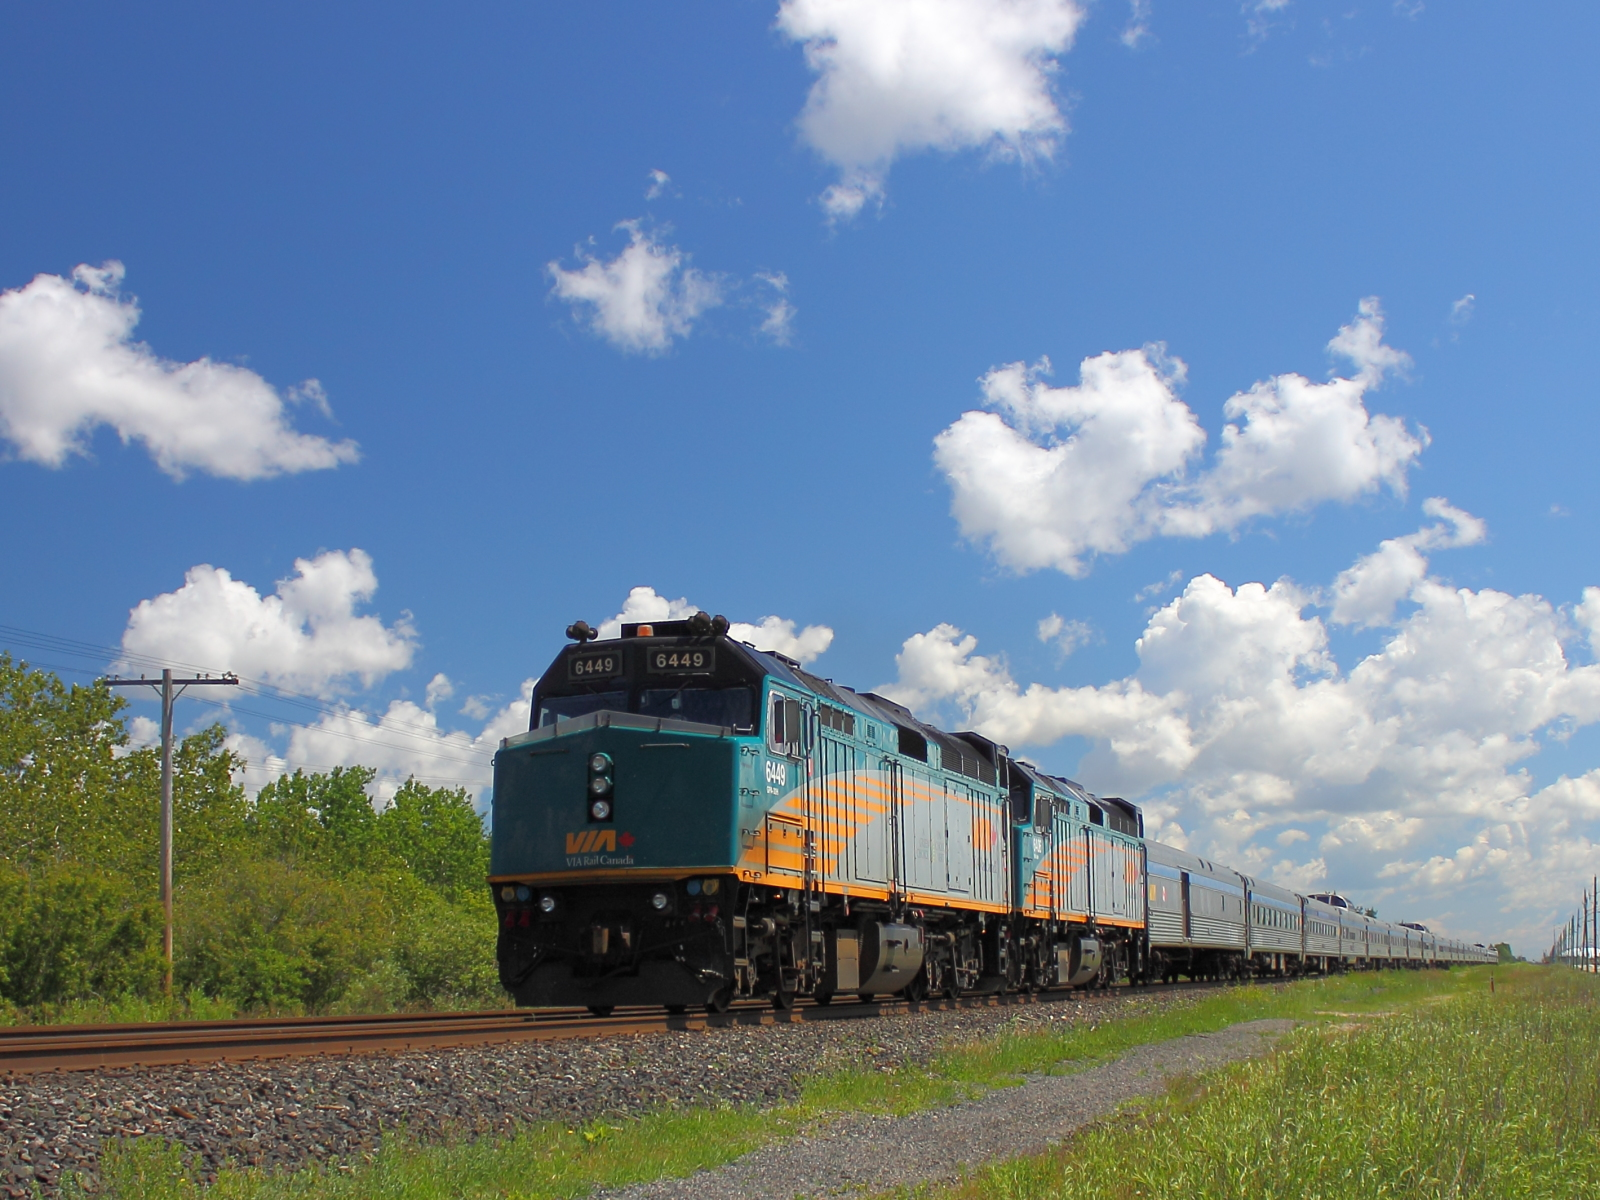 VIA 6449 in Winnipeg, MB 2012/06/21